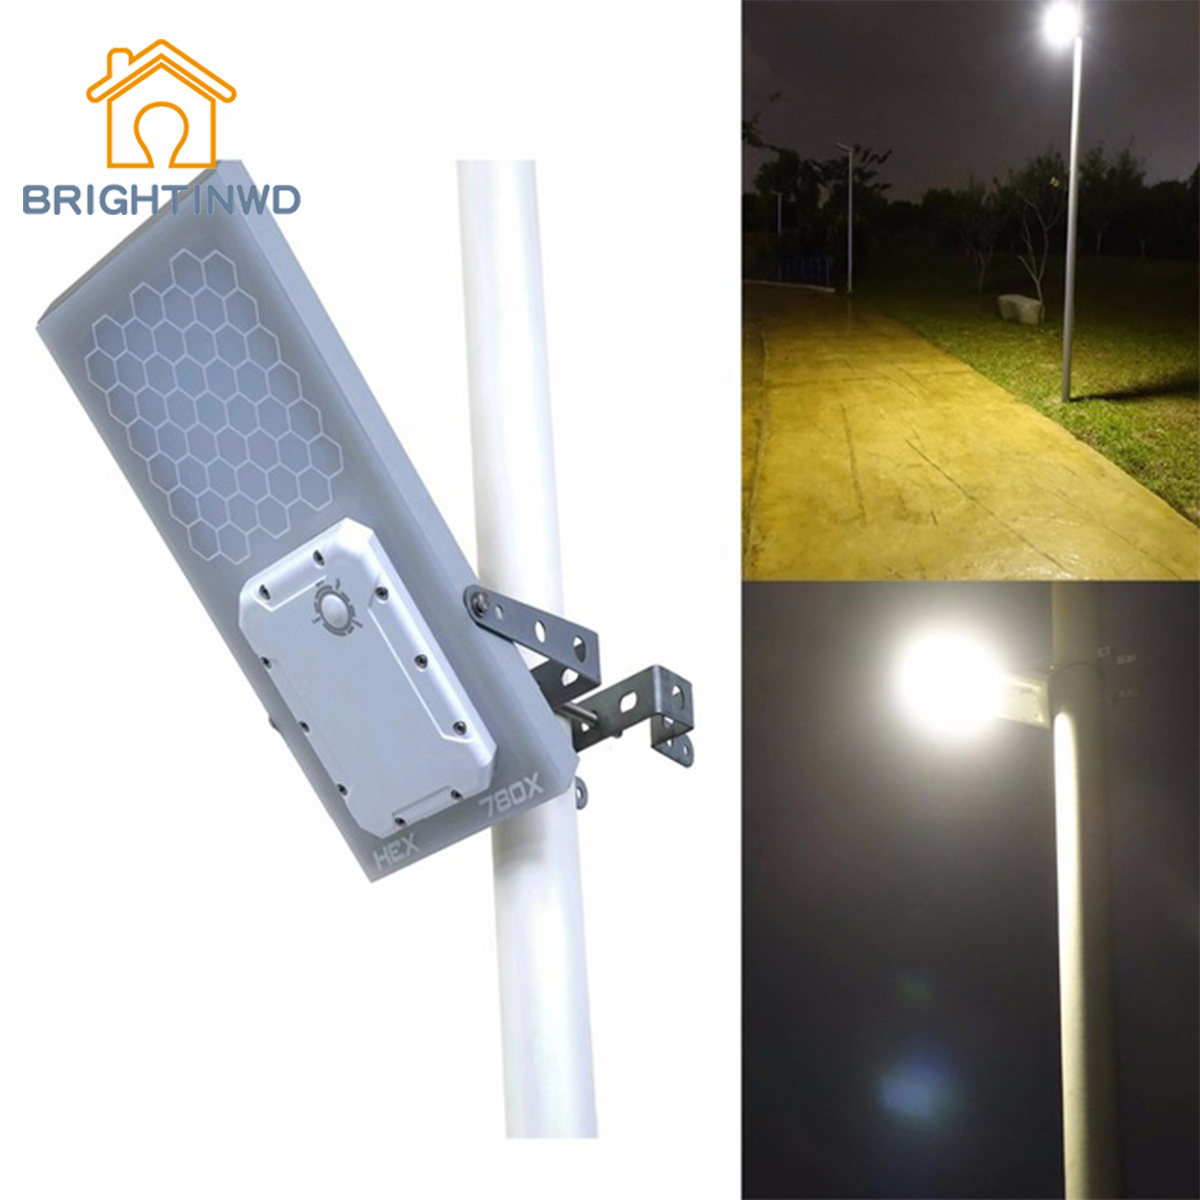 BRIGHTINWD Outdoor Light Warm White All in One Waterproof Day/Night Sensor 3 Power modes Solar Powered LED Street Light Solar solar powered 3 led white flashlight keychain silver